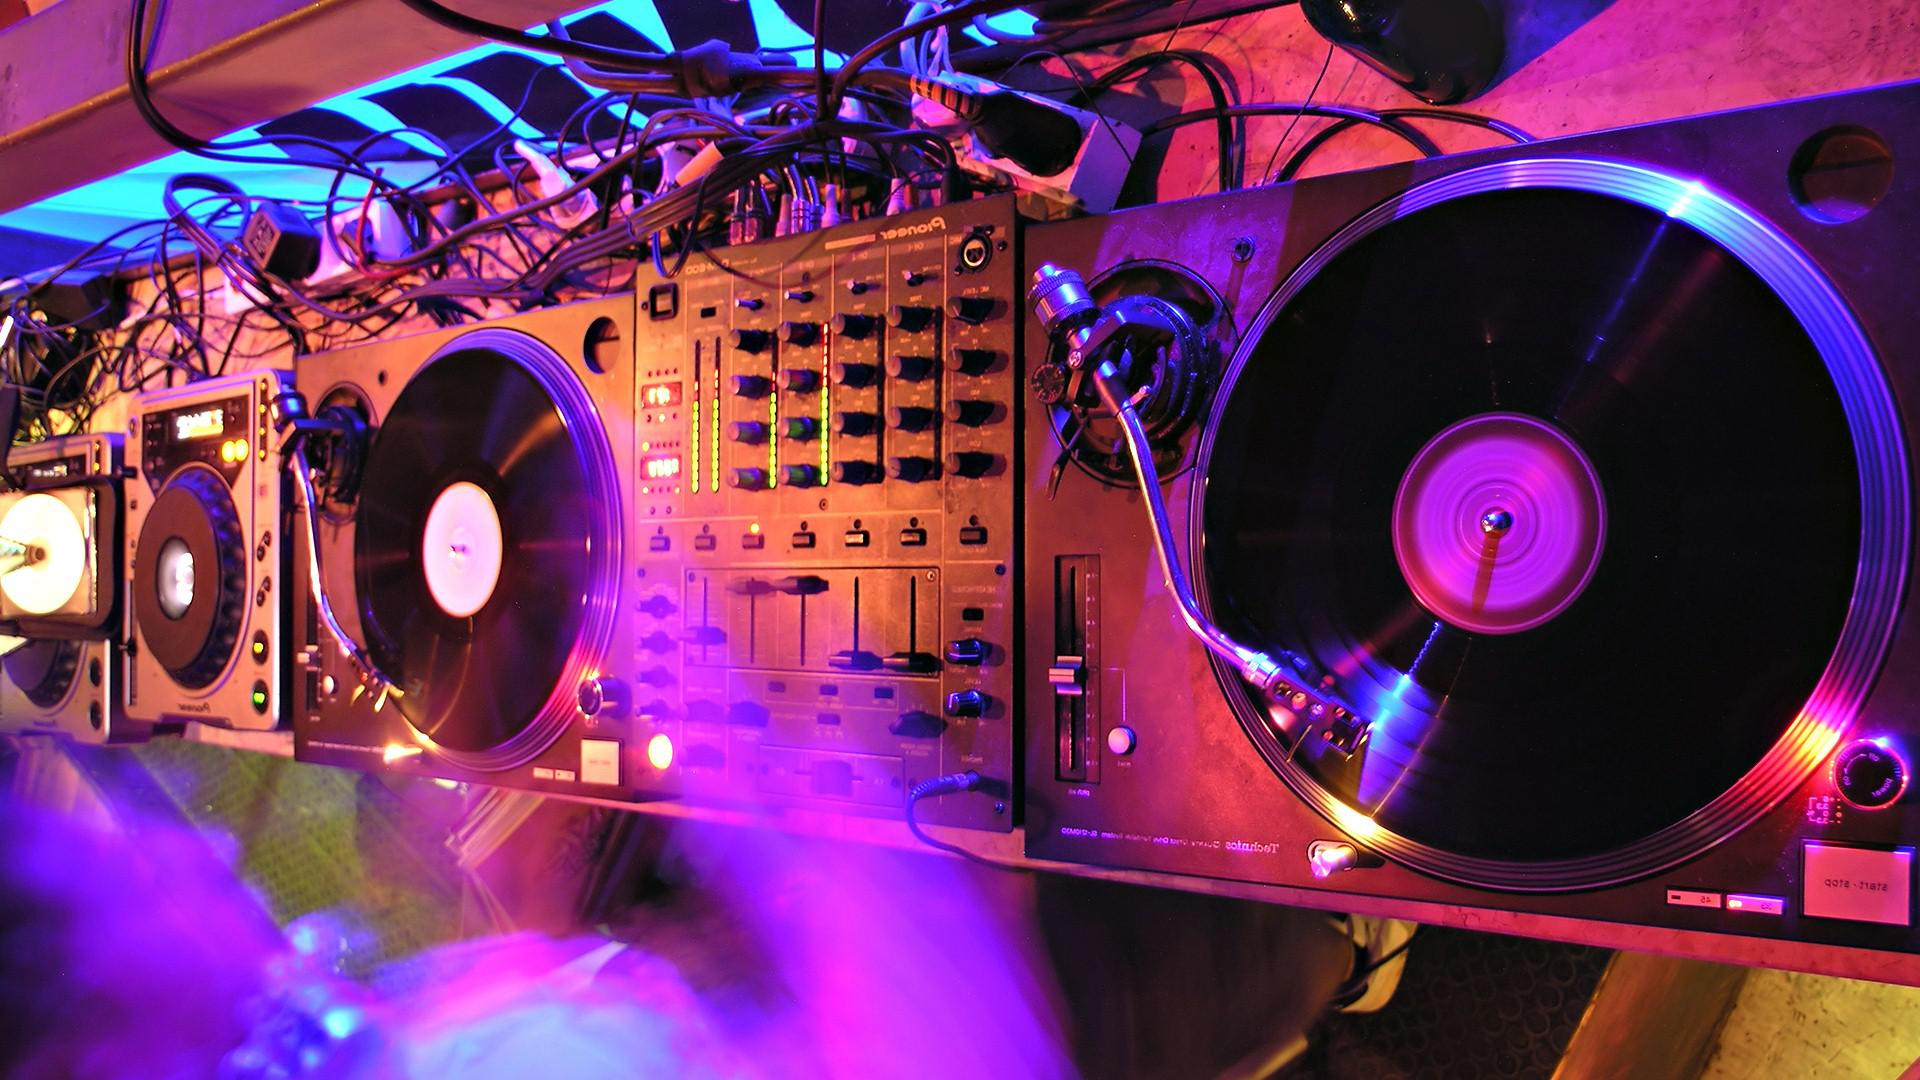 HD Disco Computer Wallpaper Download   138790 1920x1080